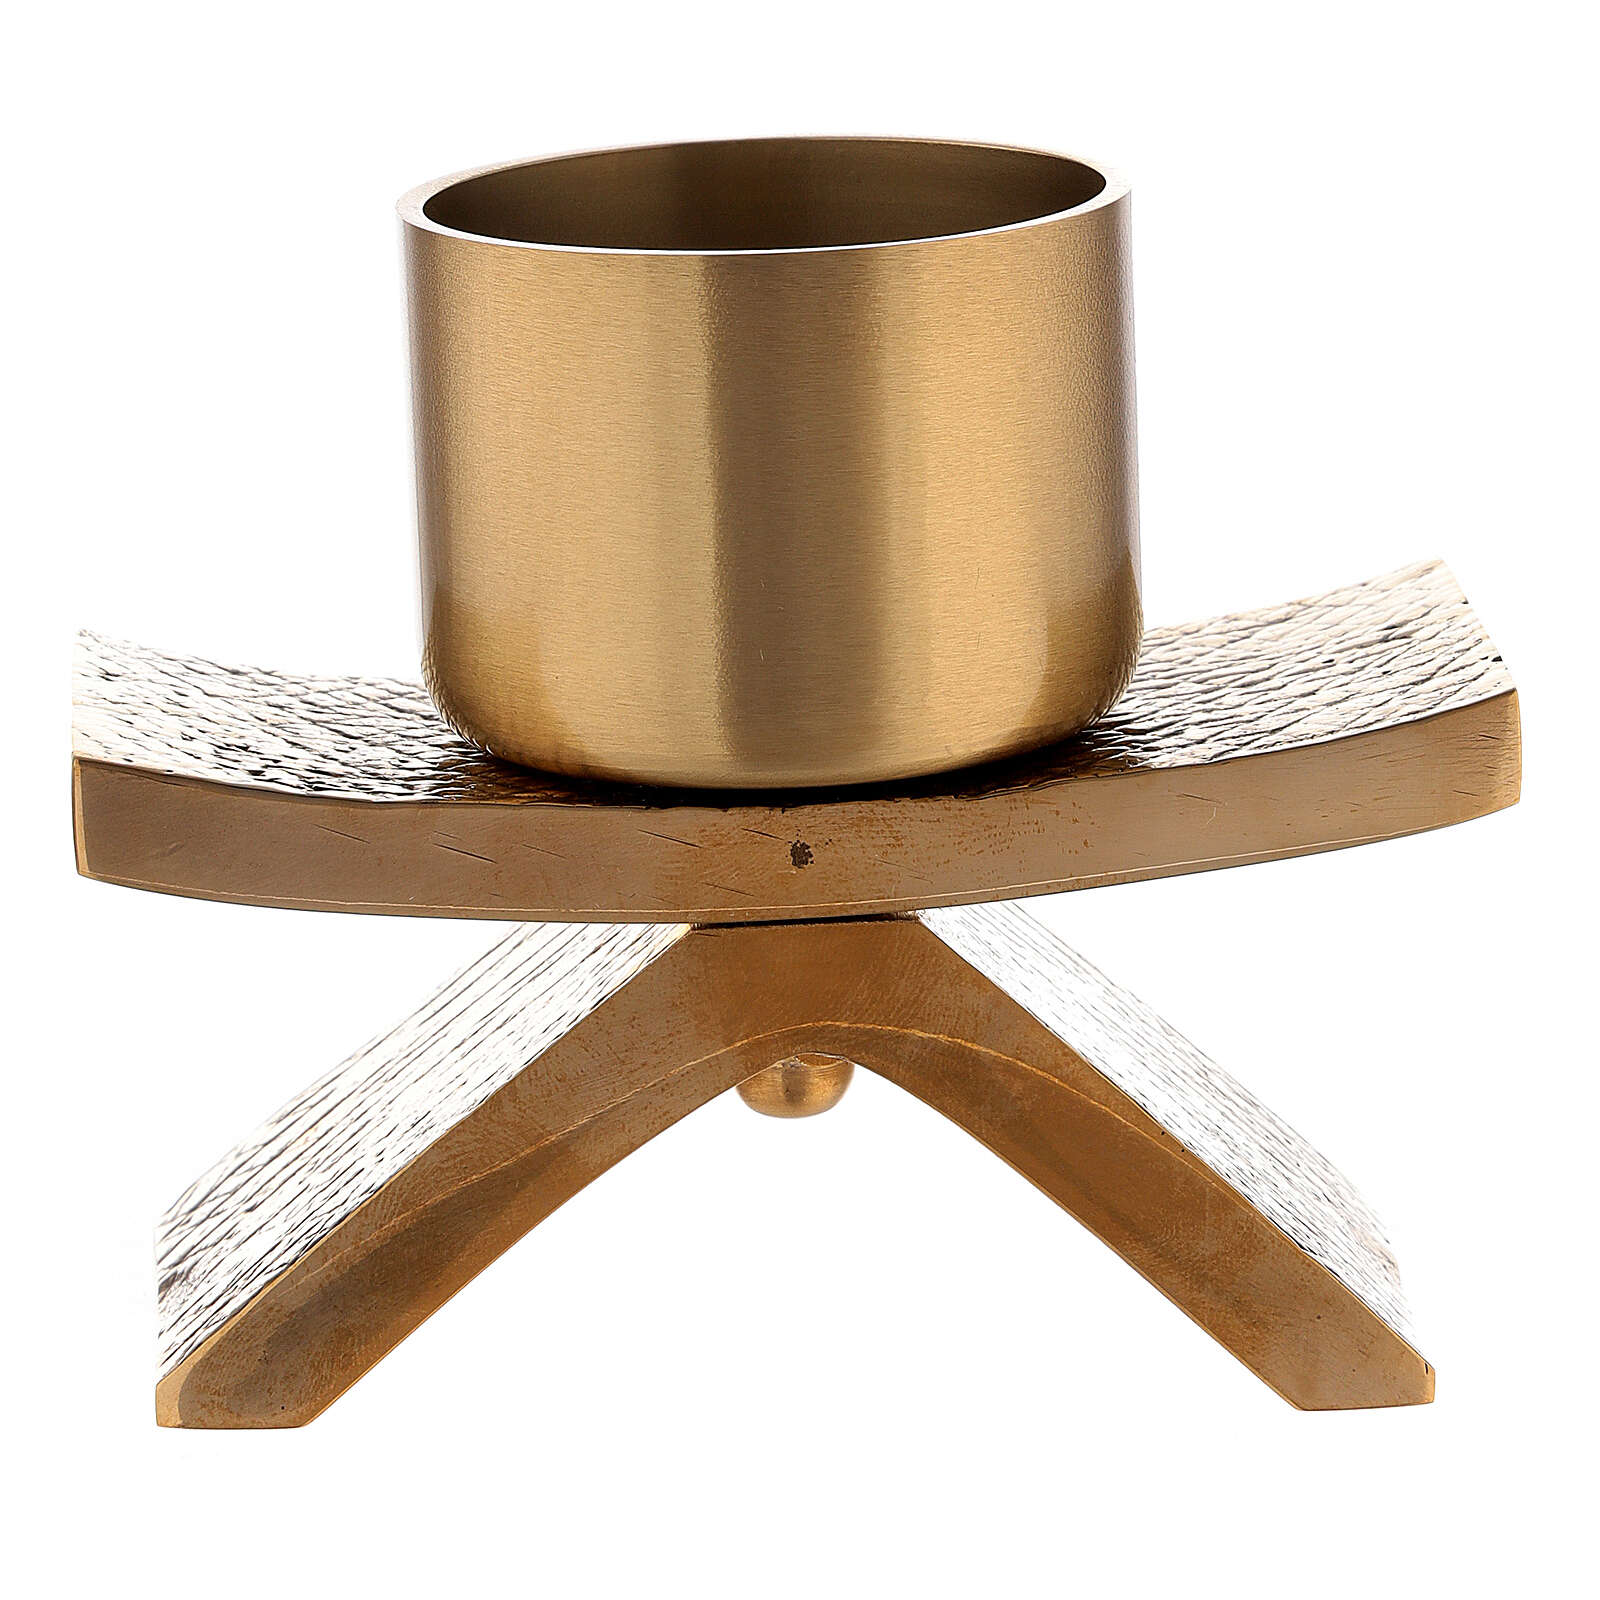 Bronze Molina candlestick with socket 2 in 4